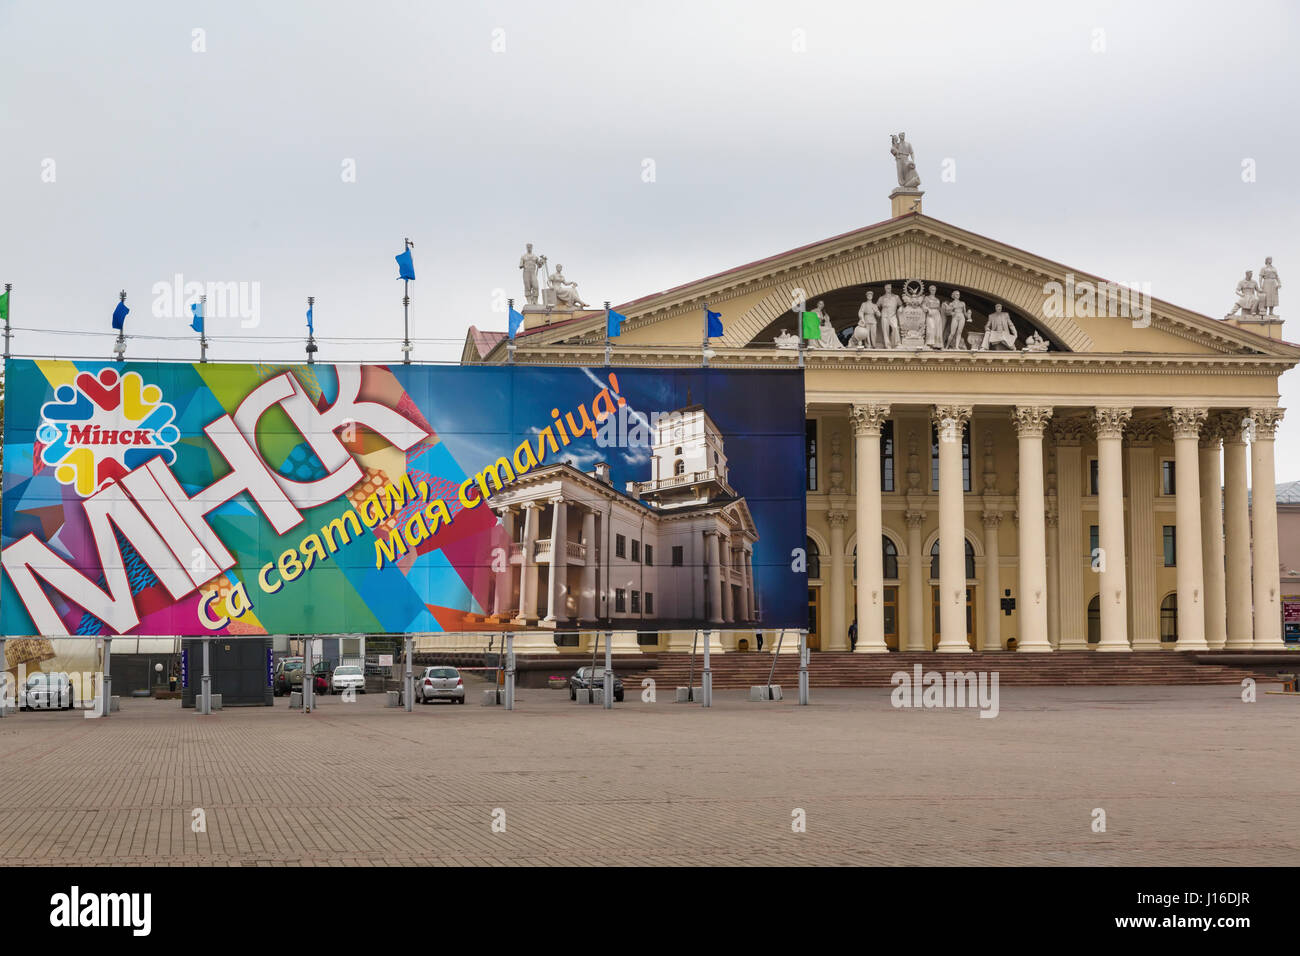 View of the Palace of Culture of Trade Unions during celebration the City Day in Minsk city, Belarus Republic - Stock Image